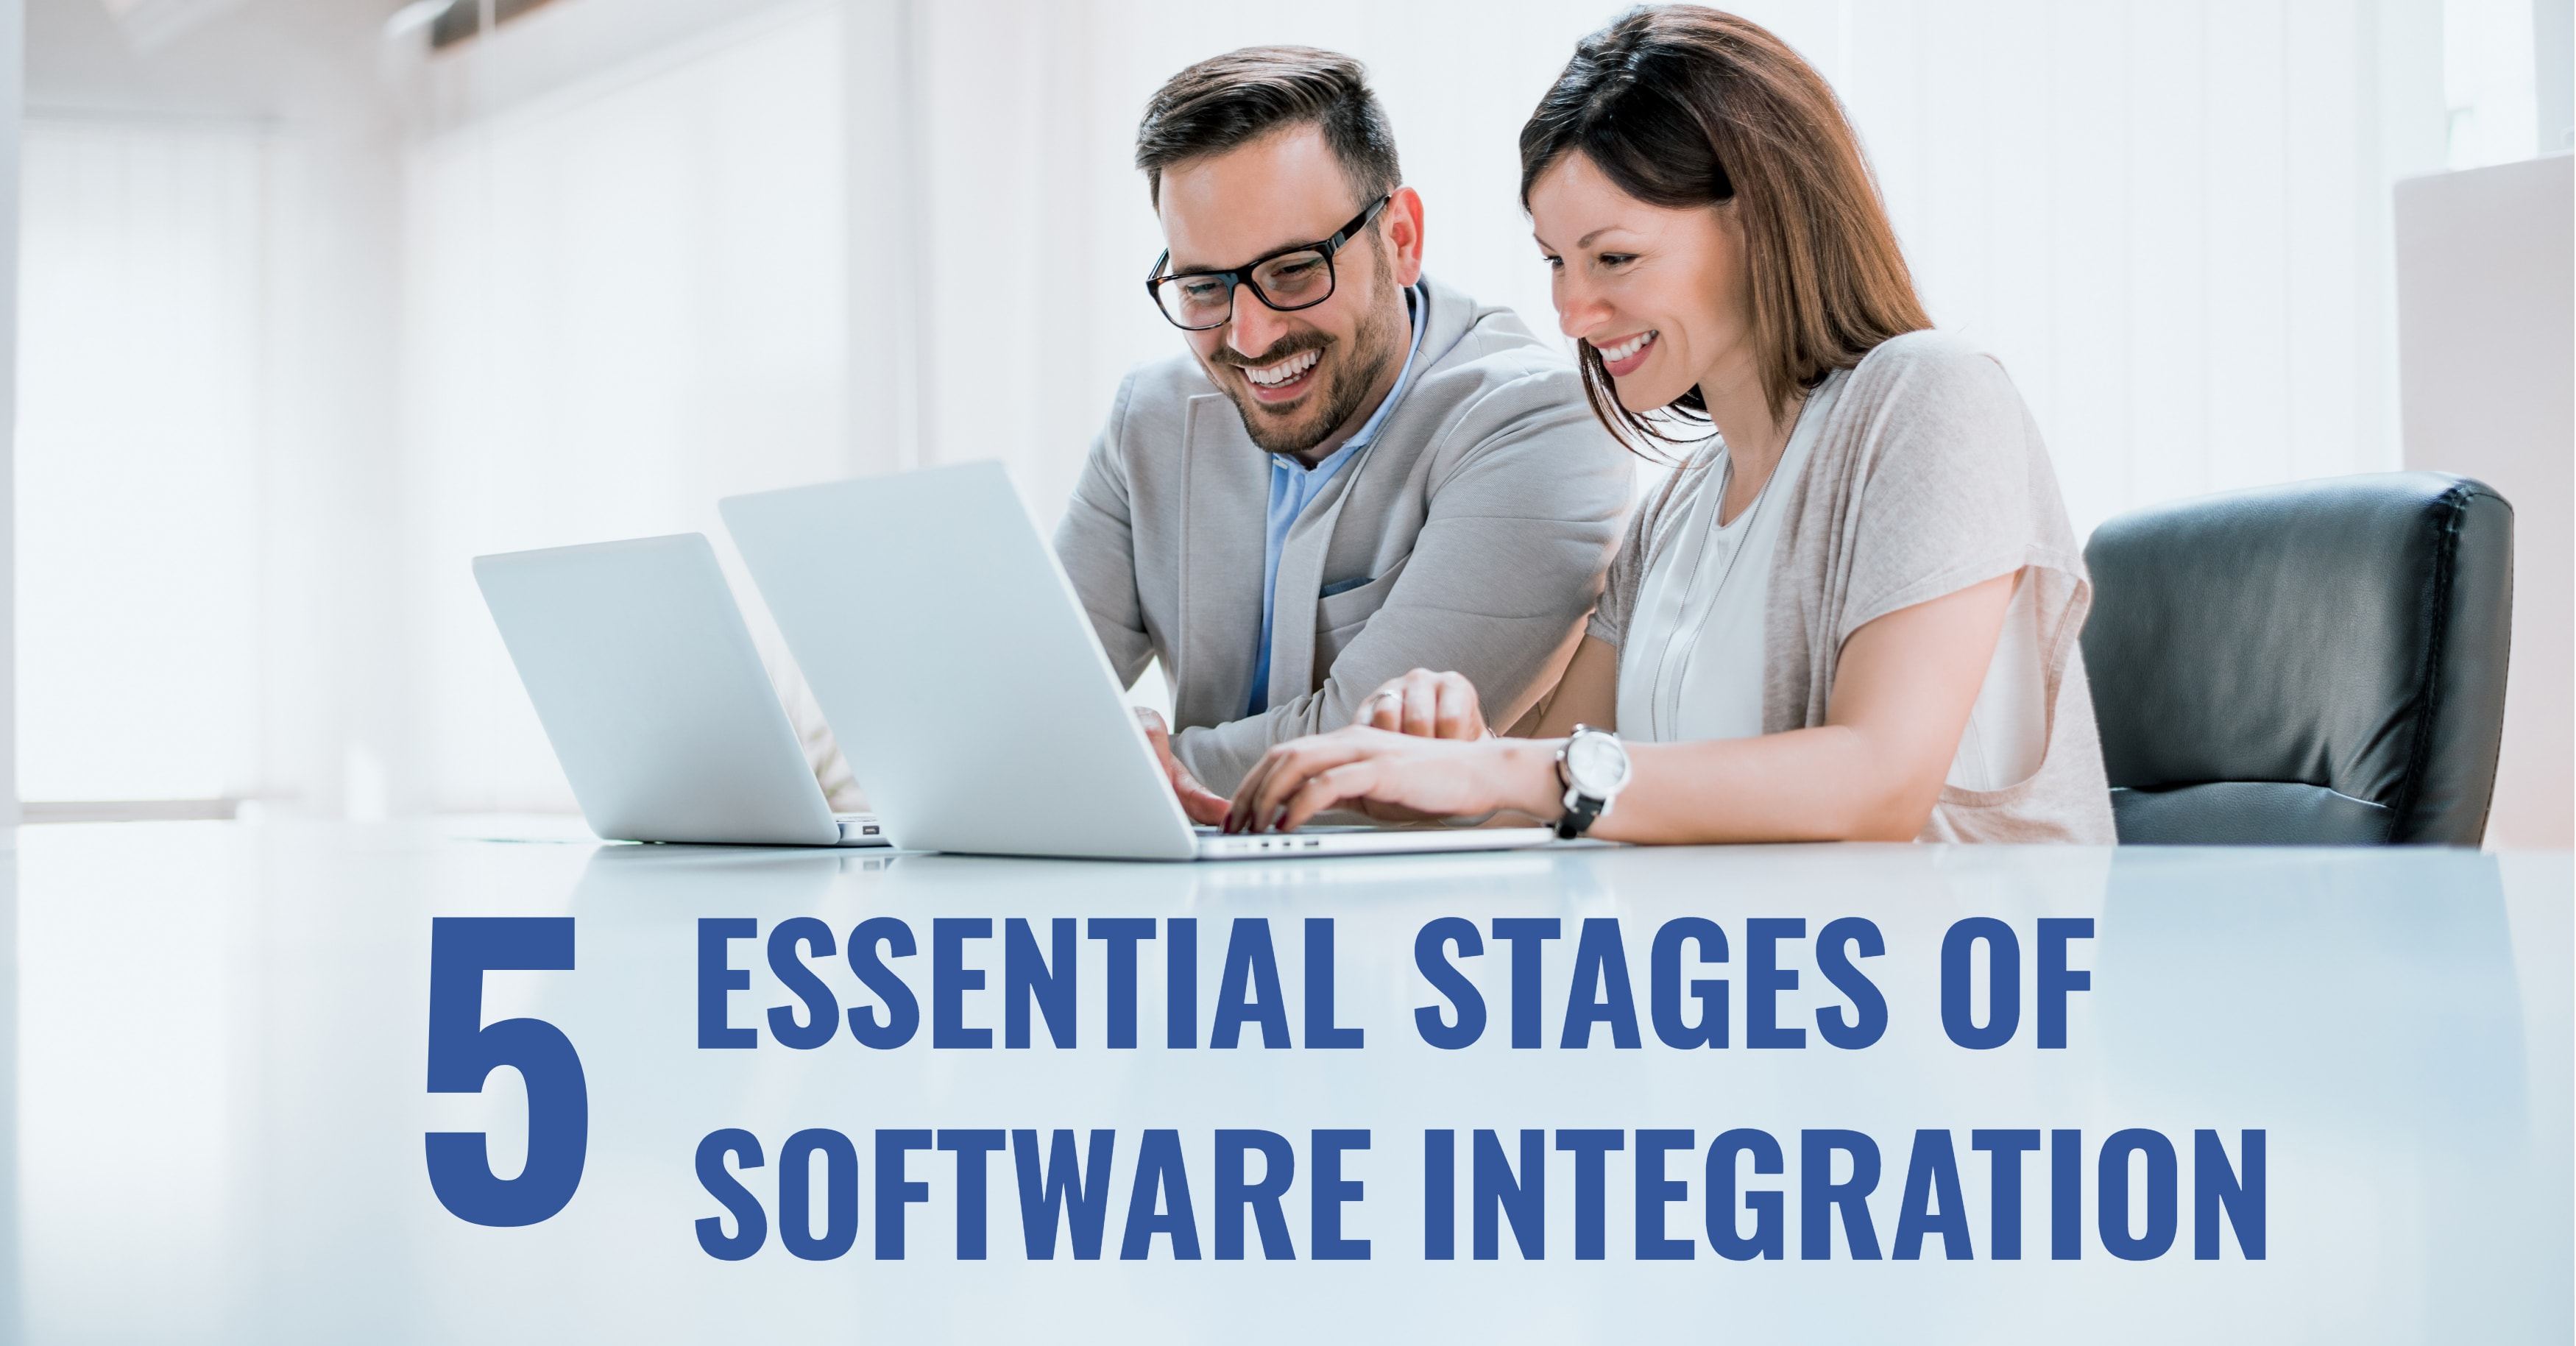 5 Essential Stages of Software Integration